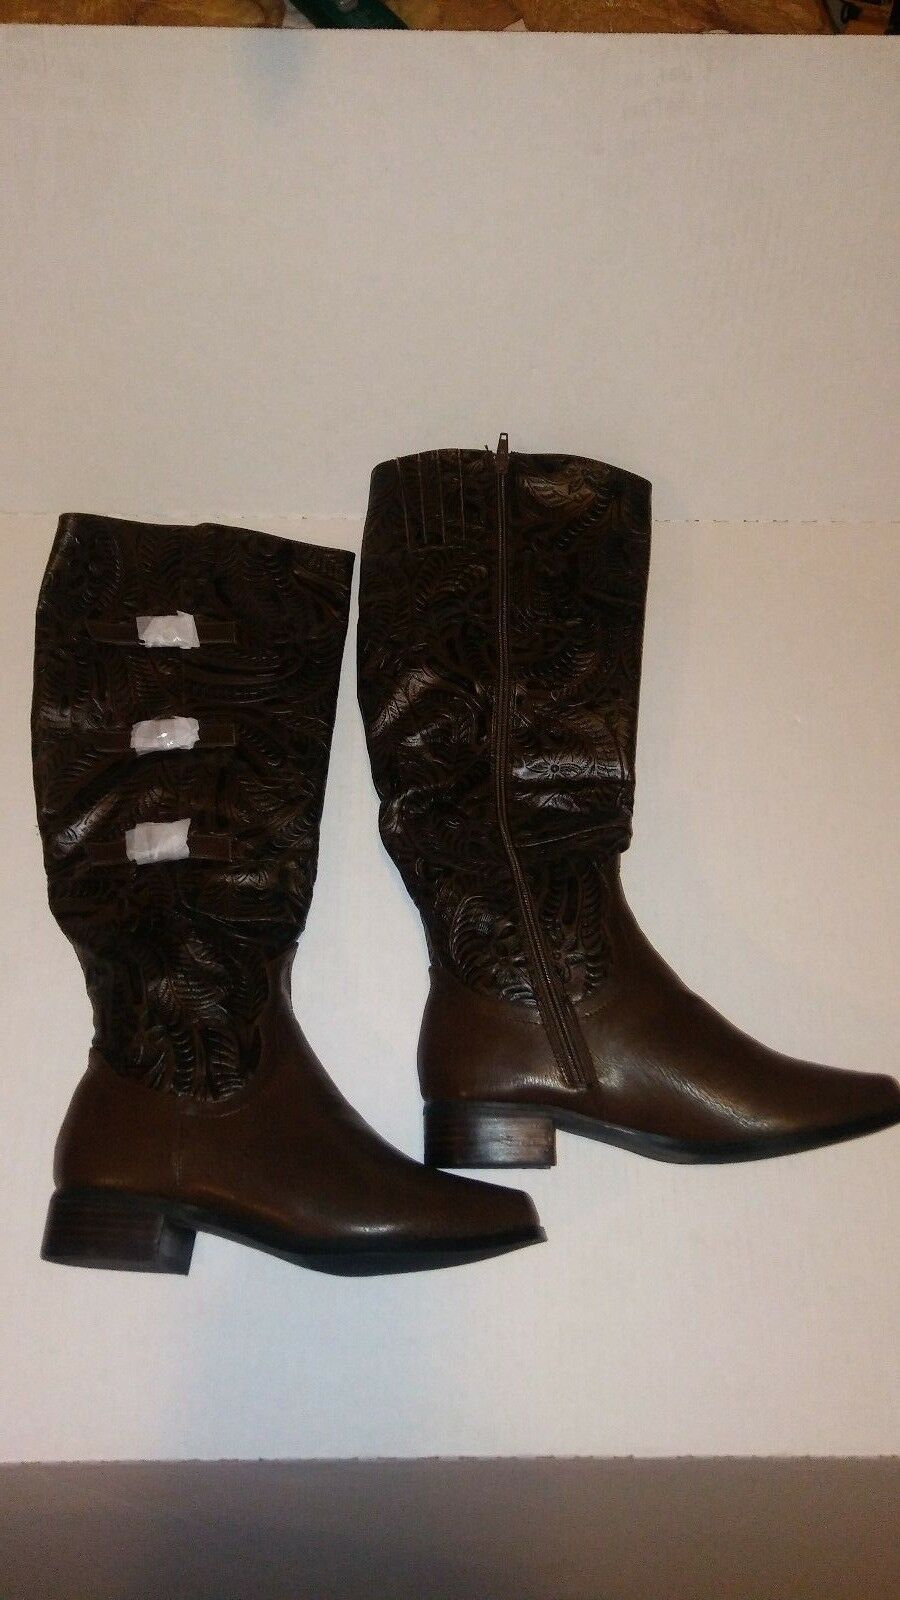 Andiamo Burnished Tooled Knee Boots Color Coffee Dr Brown Size 6.5 W